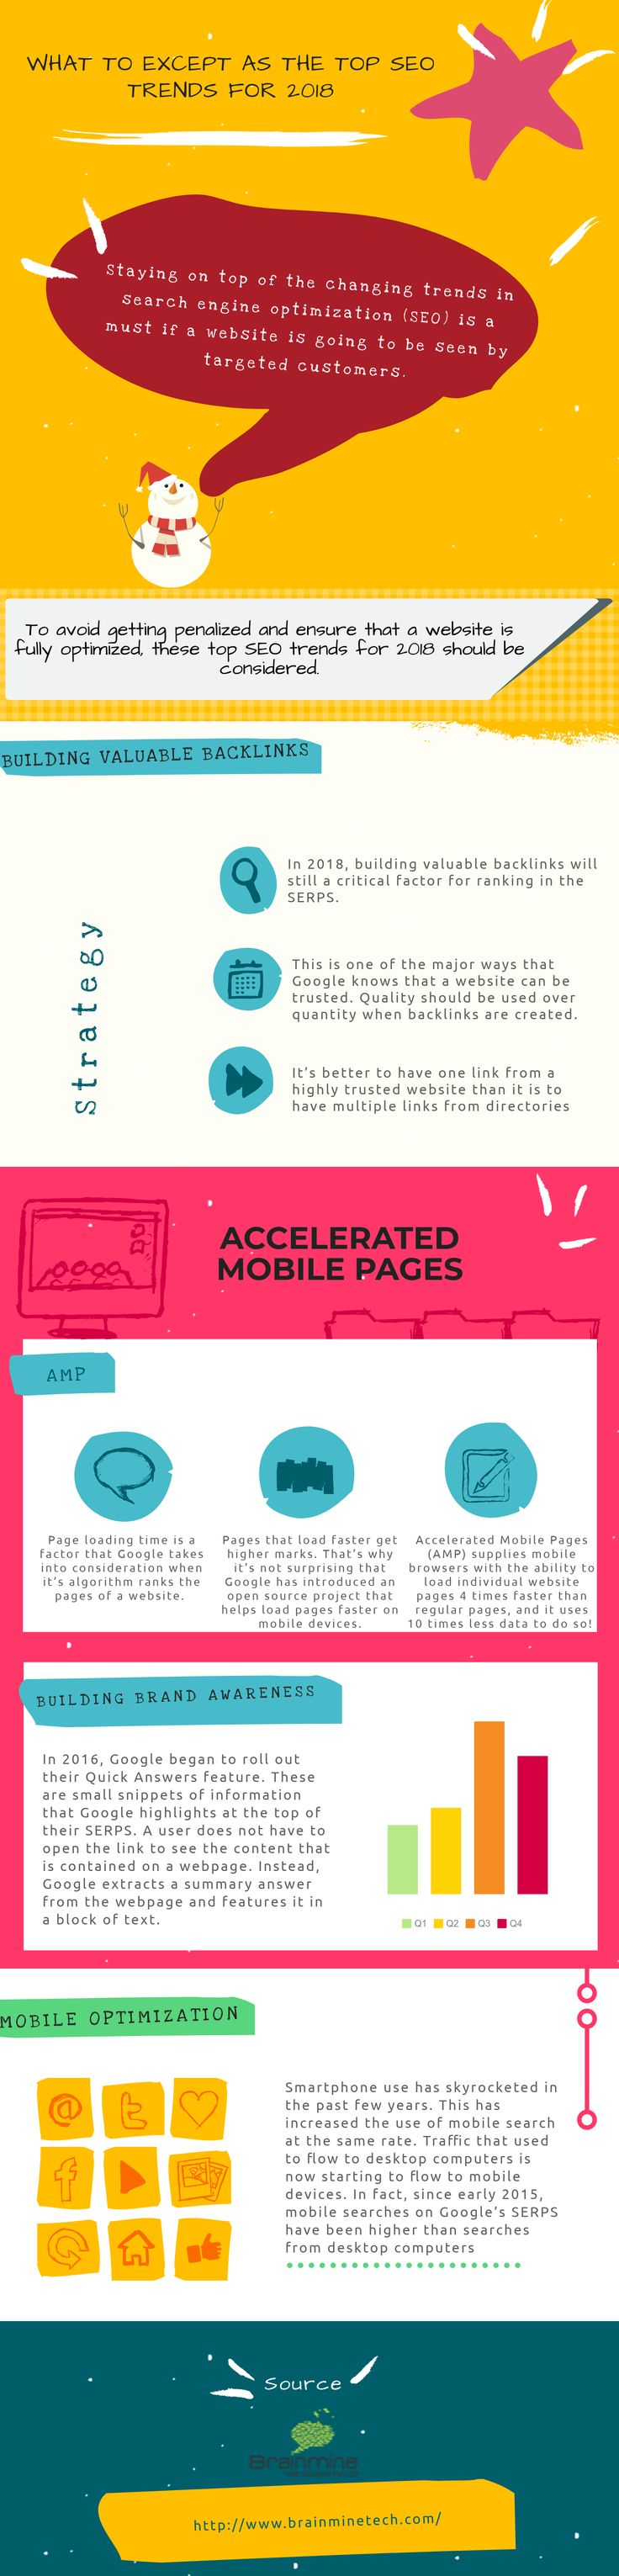 What To Except As The Top Seo Trends For 2018 #Seo #SERP #AMP #Mobileoptimizationhttp://www.brainminetech.com/infographics/what-to-except-as-the-top-seo-trends-for-2018.html